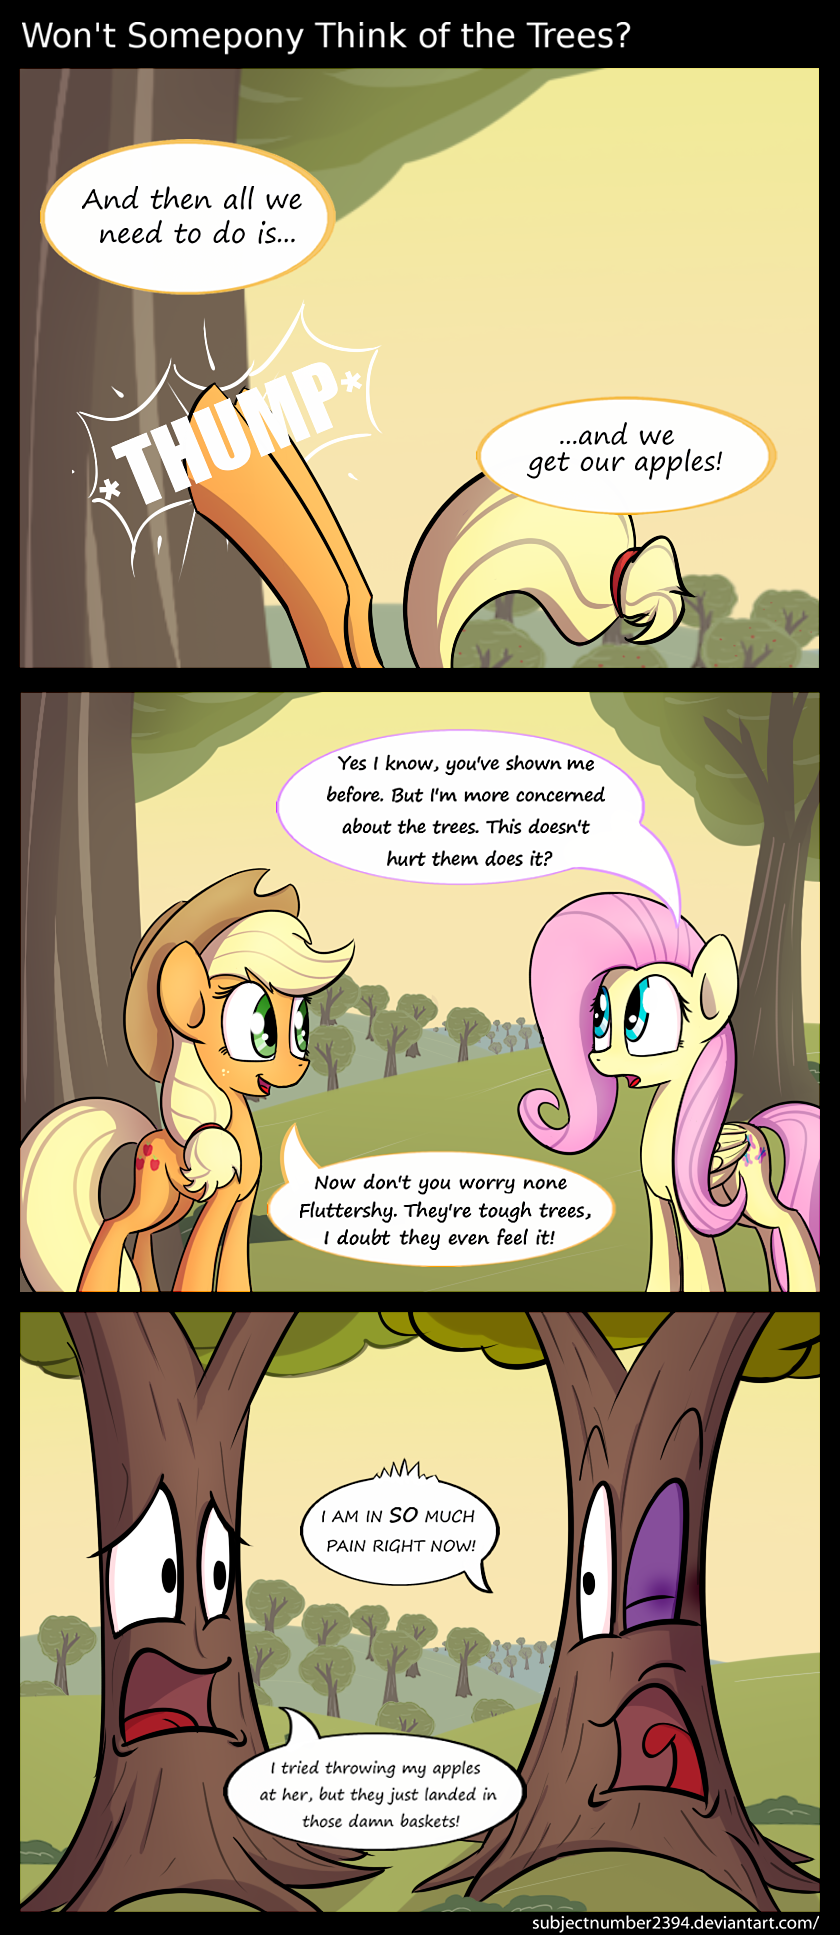 Won't Somepony Think of the Trees